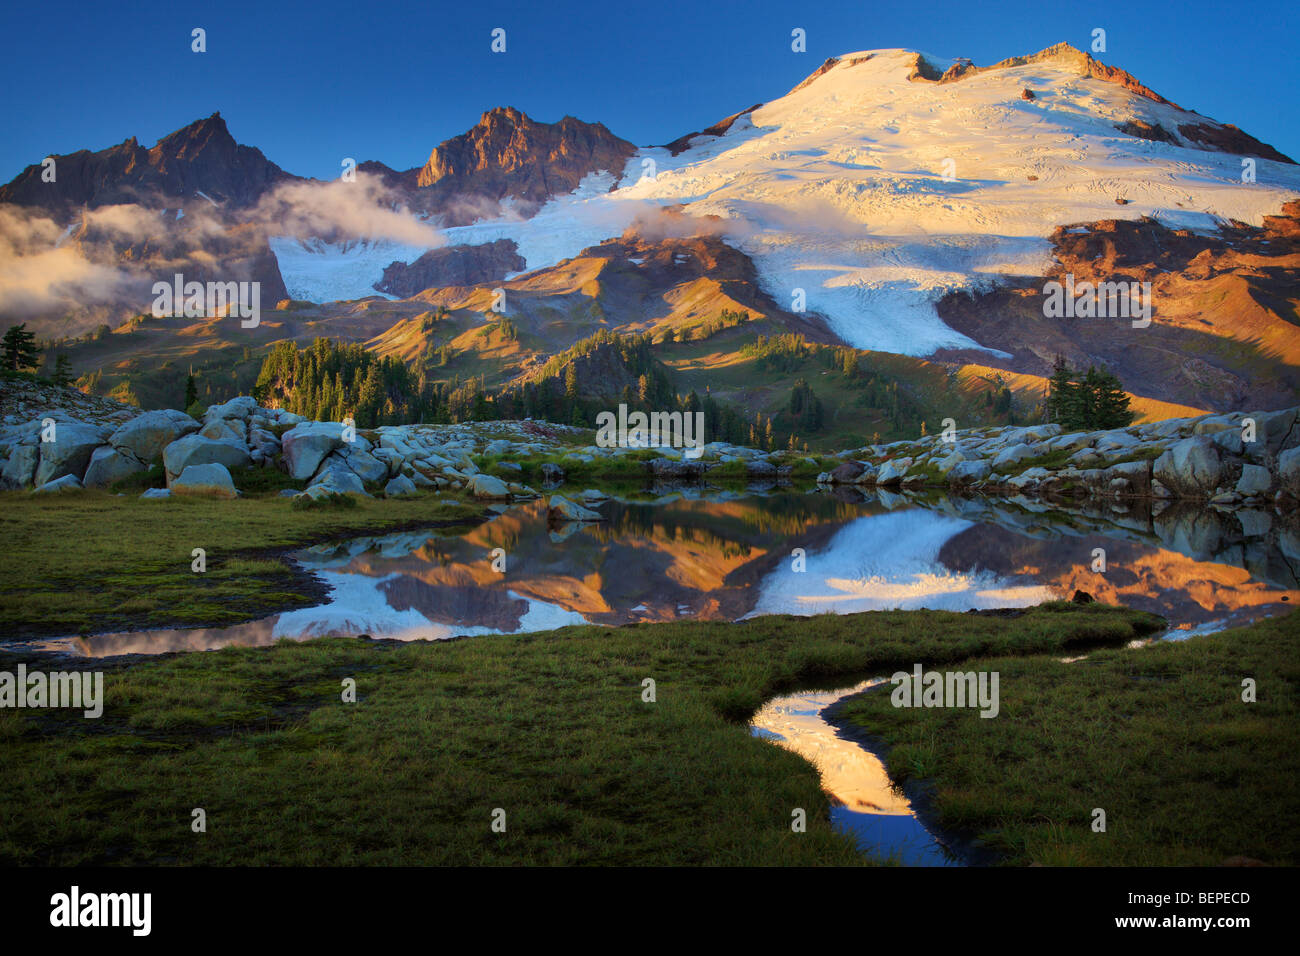 Mount Baker reflecting in tarn near Park Butte in the Mount Baker Wilderness - Stock Image